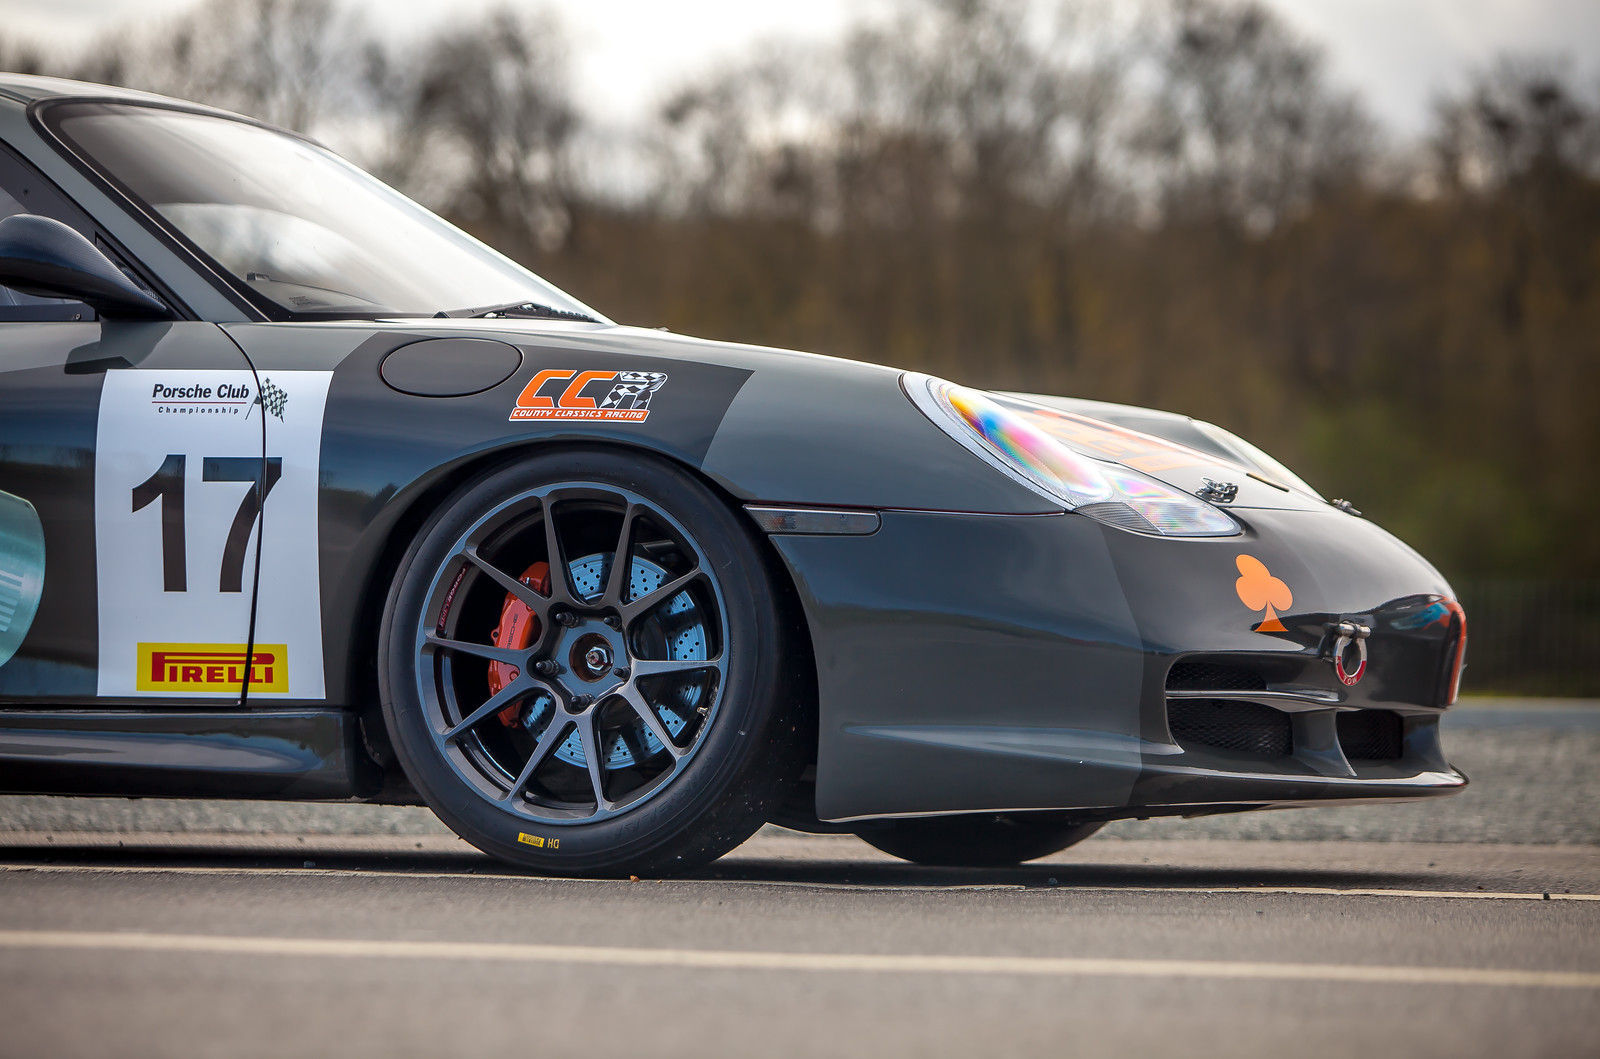 2004 Porsche 911 | Country Classics UK #17 Porsche 996 on Forgeline One Piece Forged Monoblock GS1R Wheels